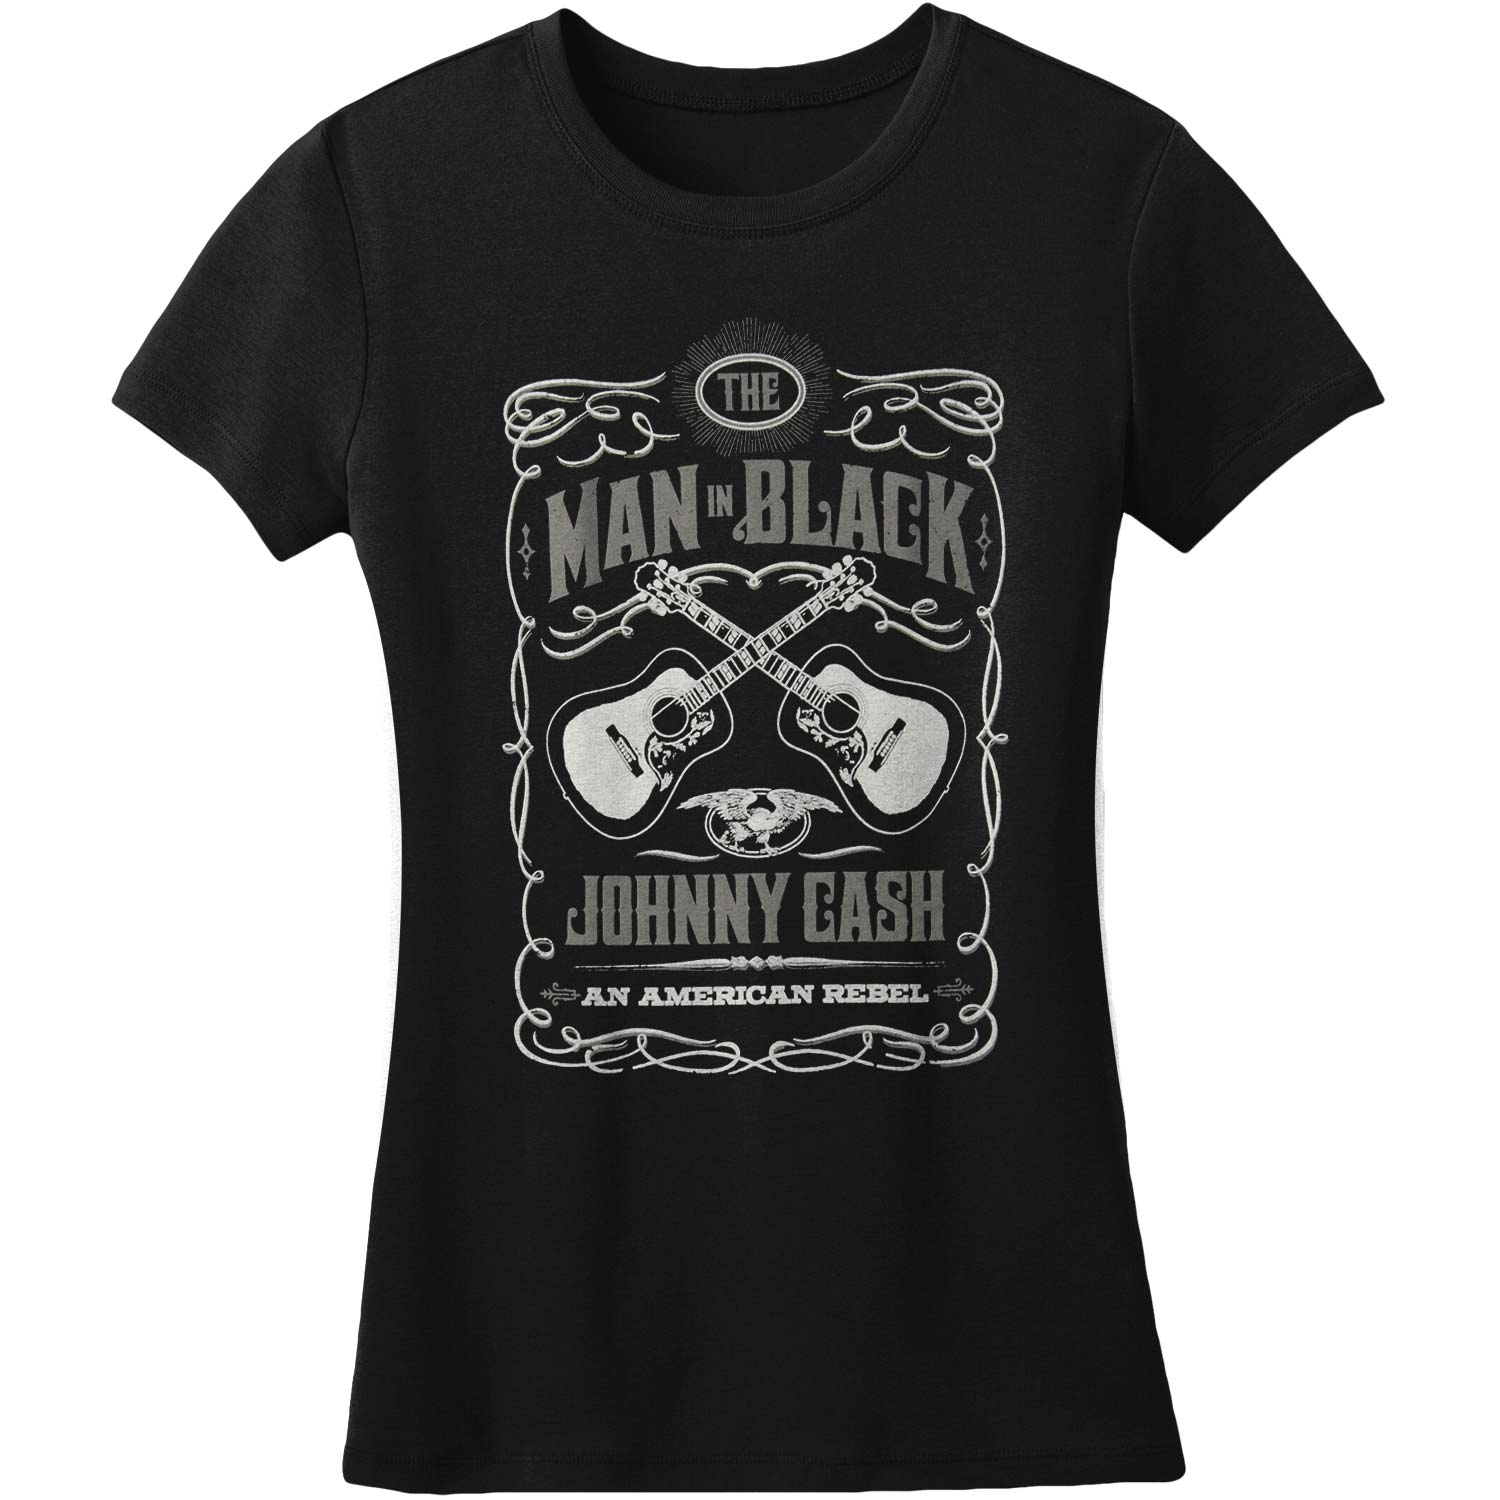 Man in Black Johnny Black womens tshirt